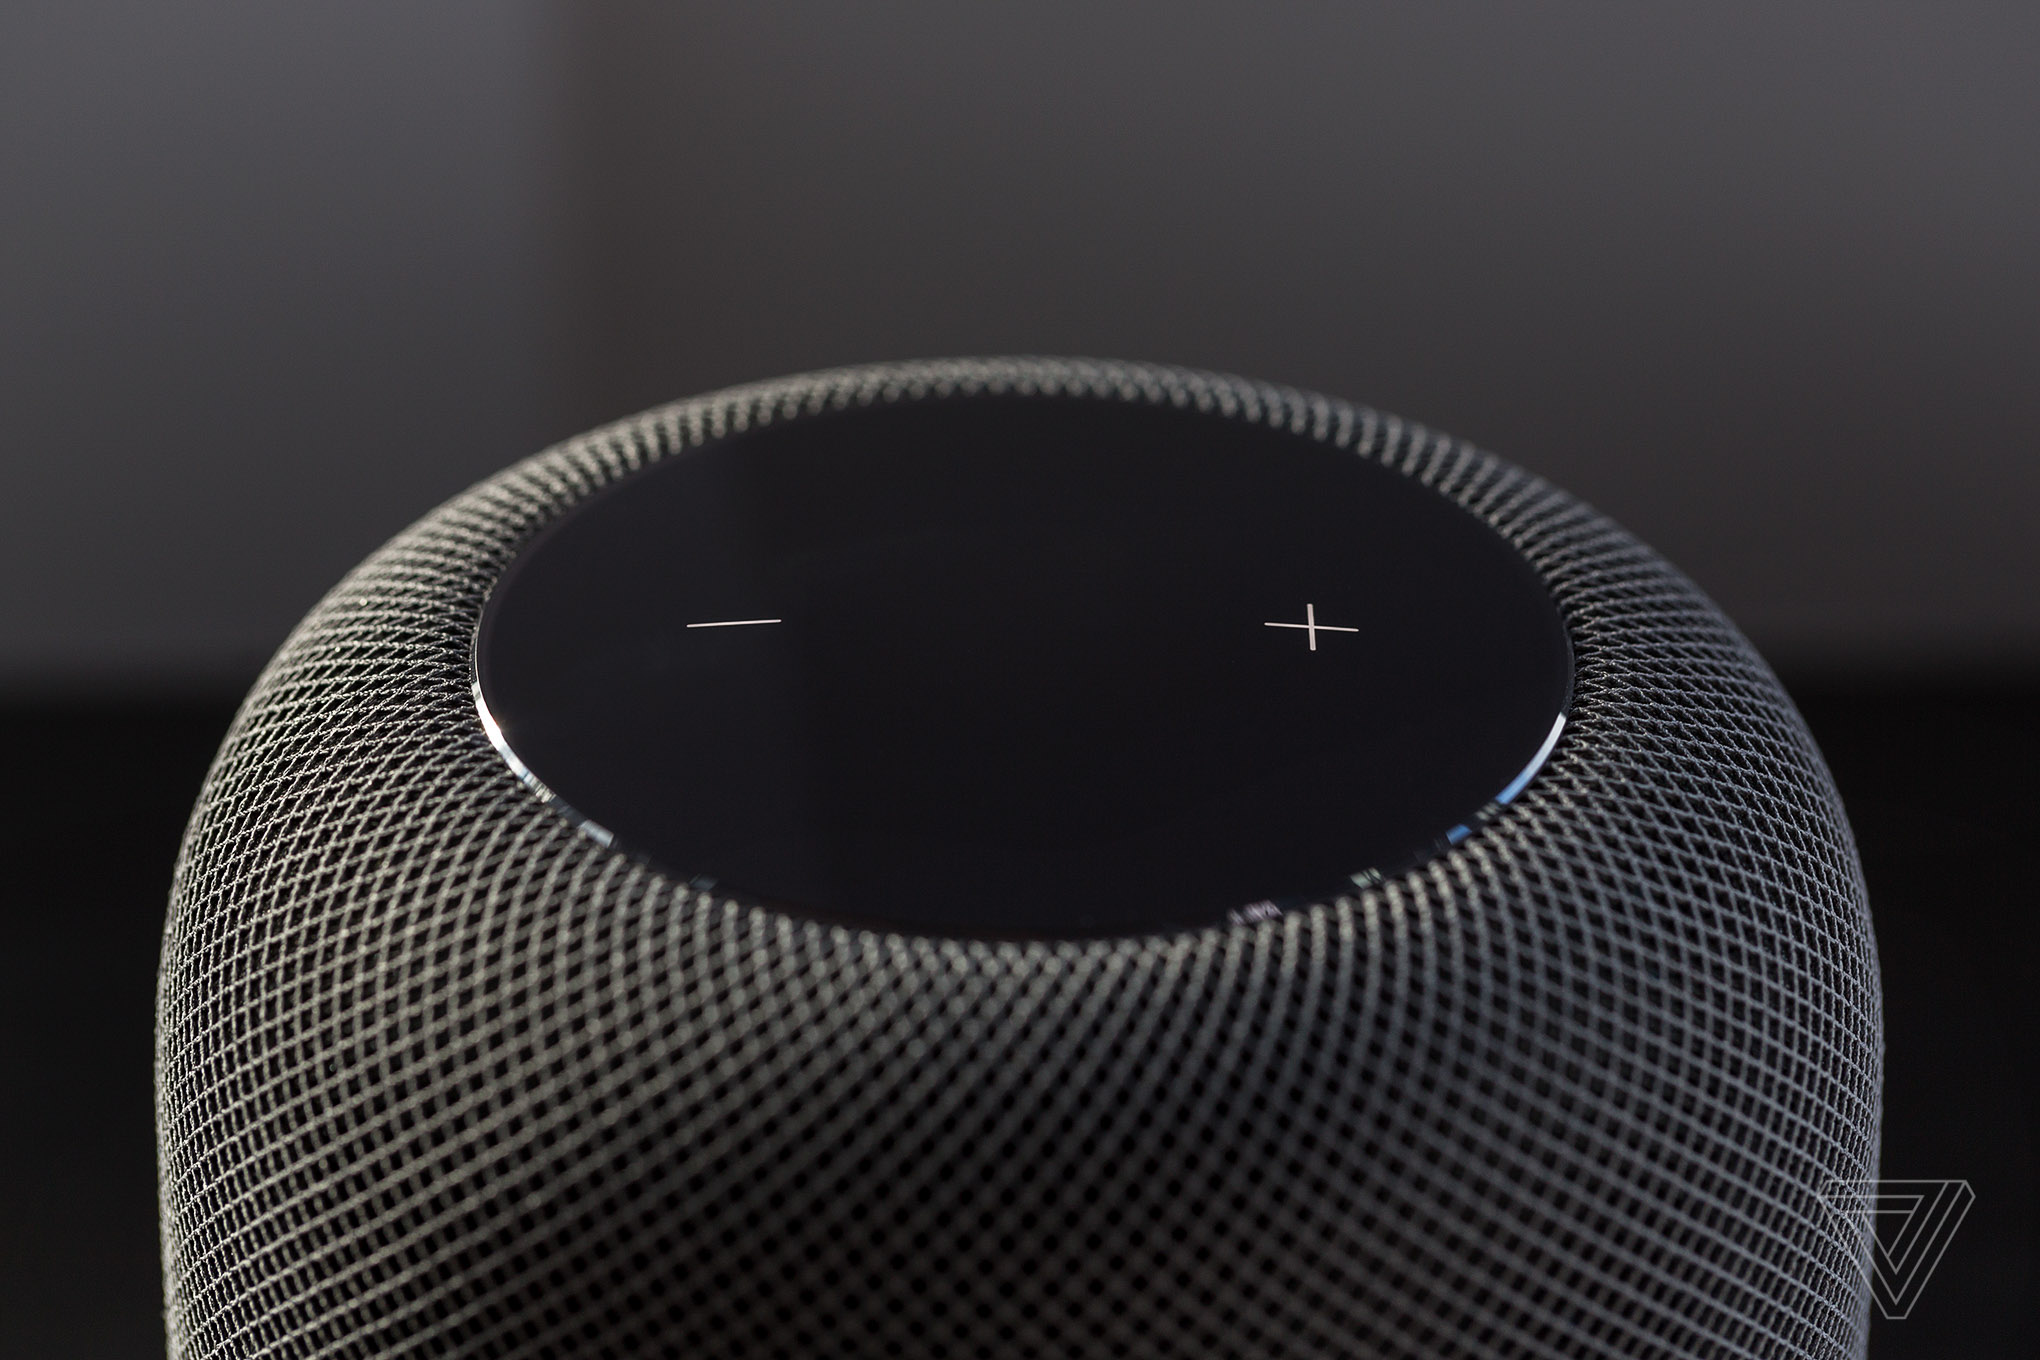 homepod volume buttons